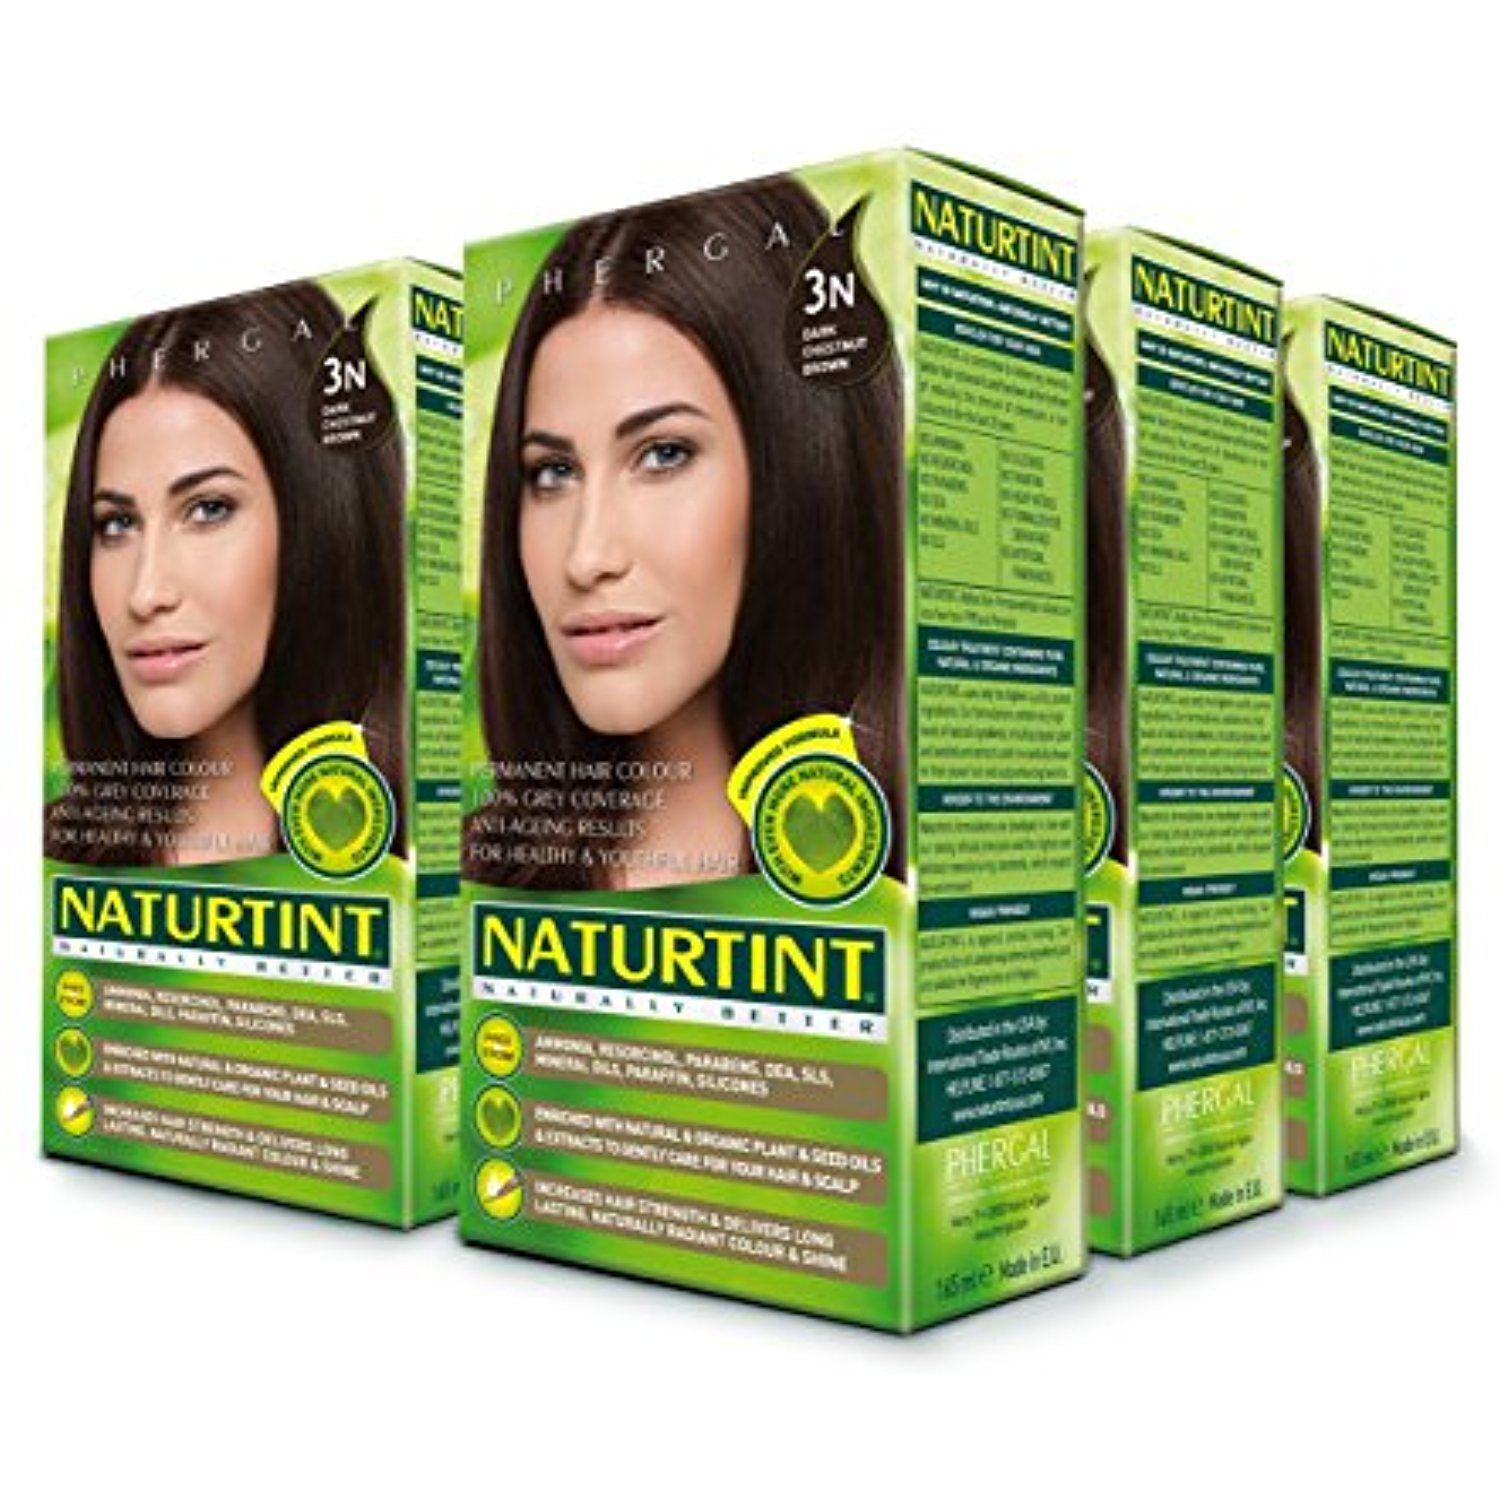 Naturtint Permanent Hair Color 3n Dark Chestnut Brown 5 28 Fl Oz 6 Pack Be Sure To Check Out This Permanent Hair Color Chestnut Hair Color Hair Color